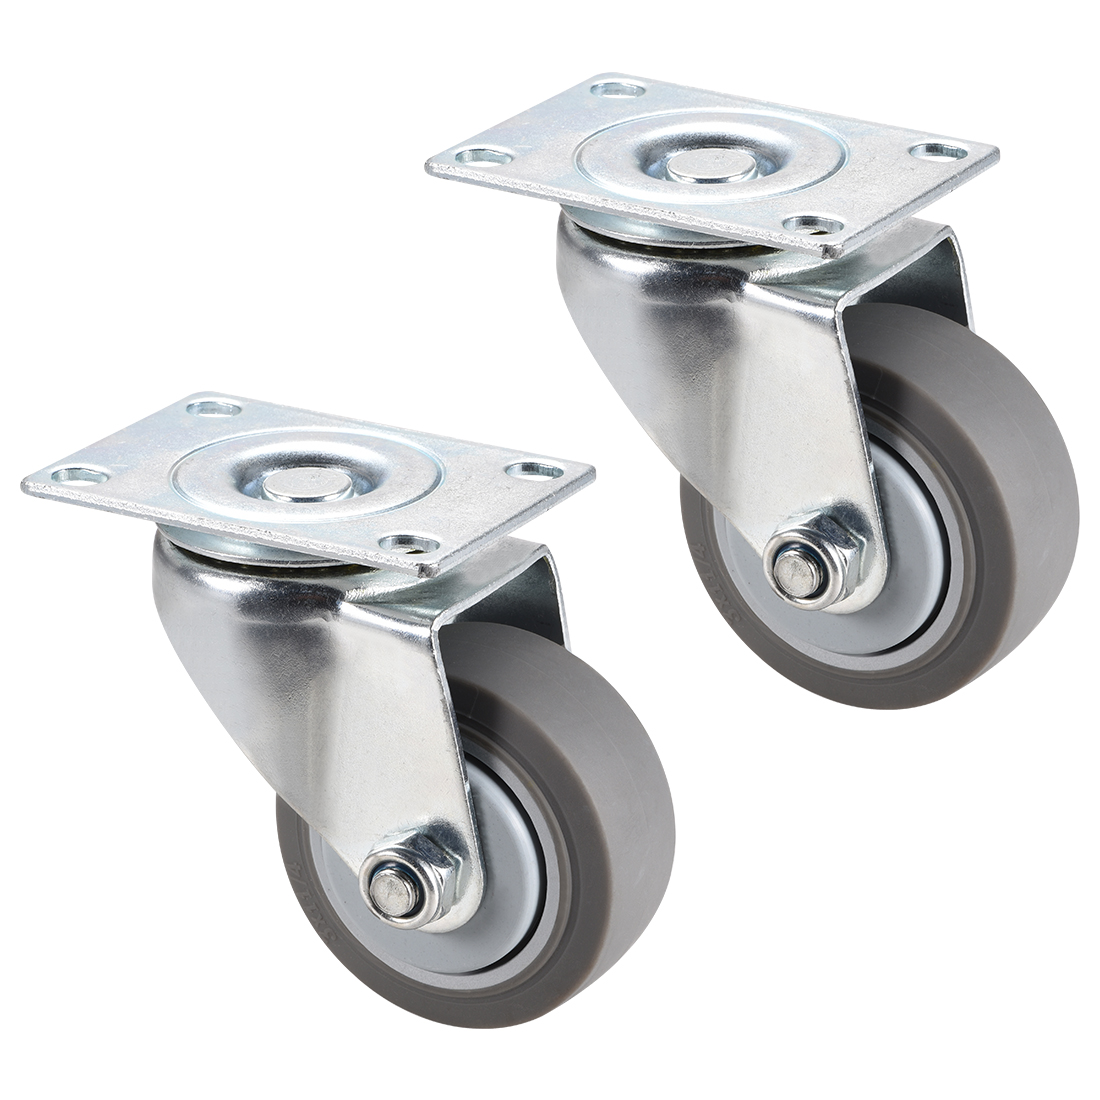 Swivel Caster Wheels 3inch TPR Caster Top Plate Mounted 220lb Capacity , 2pcs